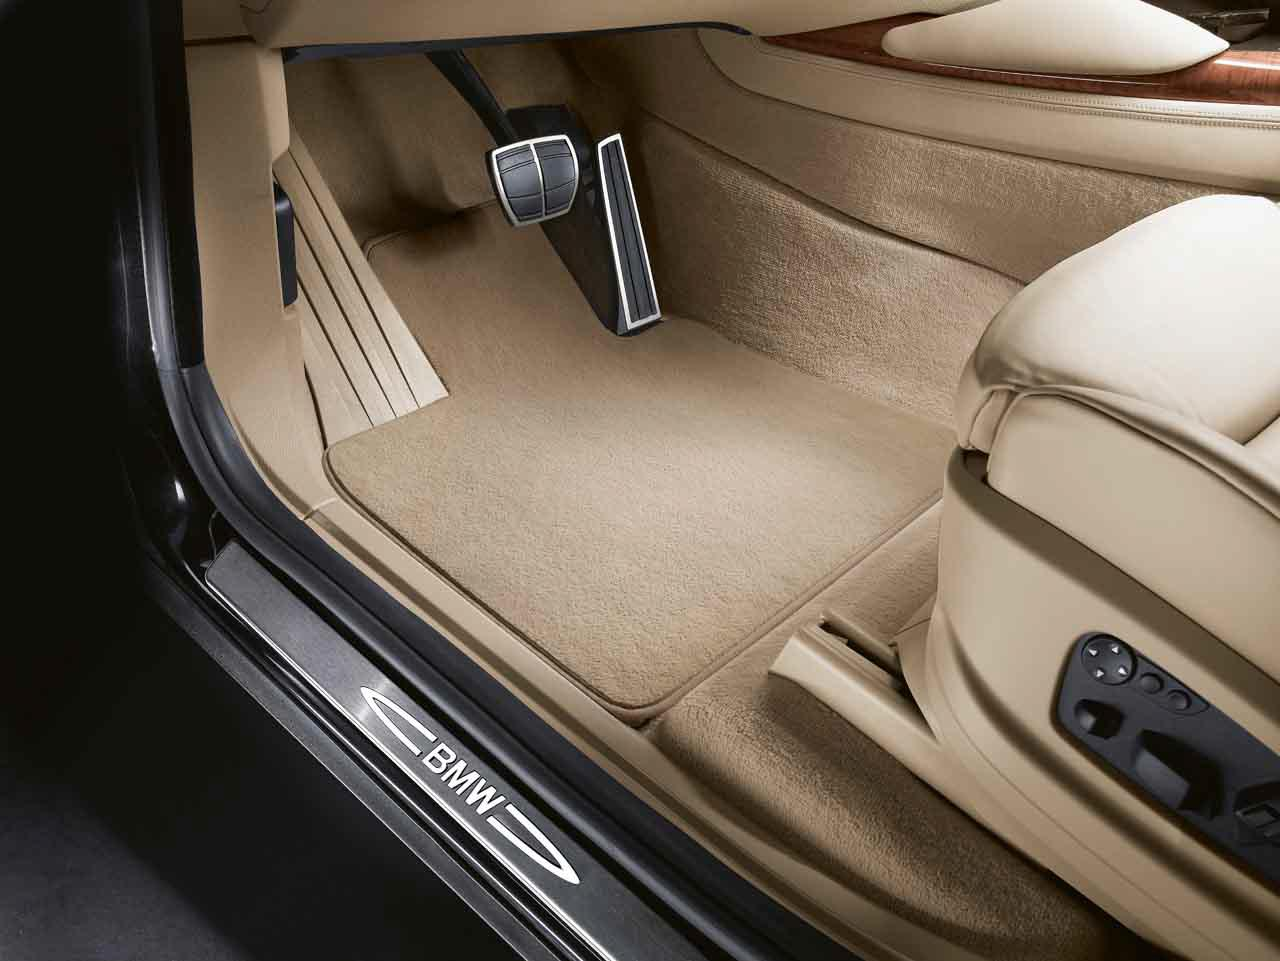 bmw genuine car floor mats set velour beige e53 x5 51478250040 ebay. Black Bedroom Furniture Sets. Home Design Ideas